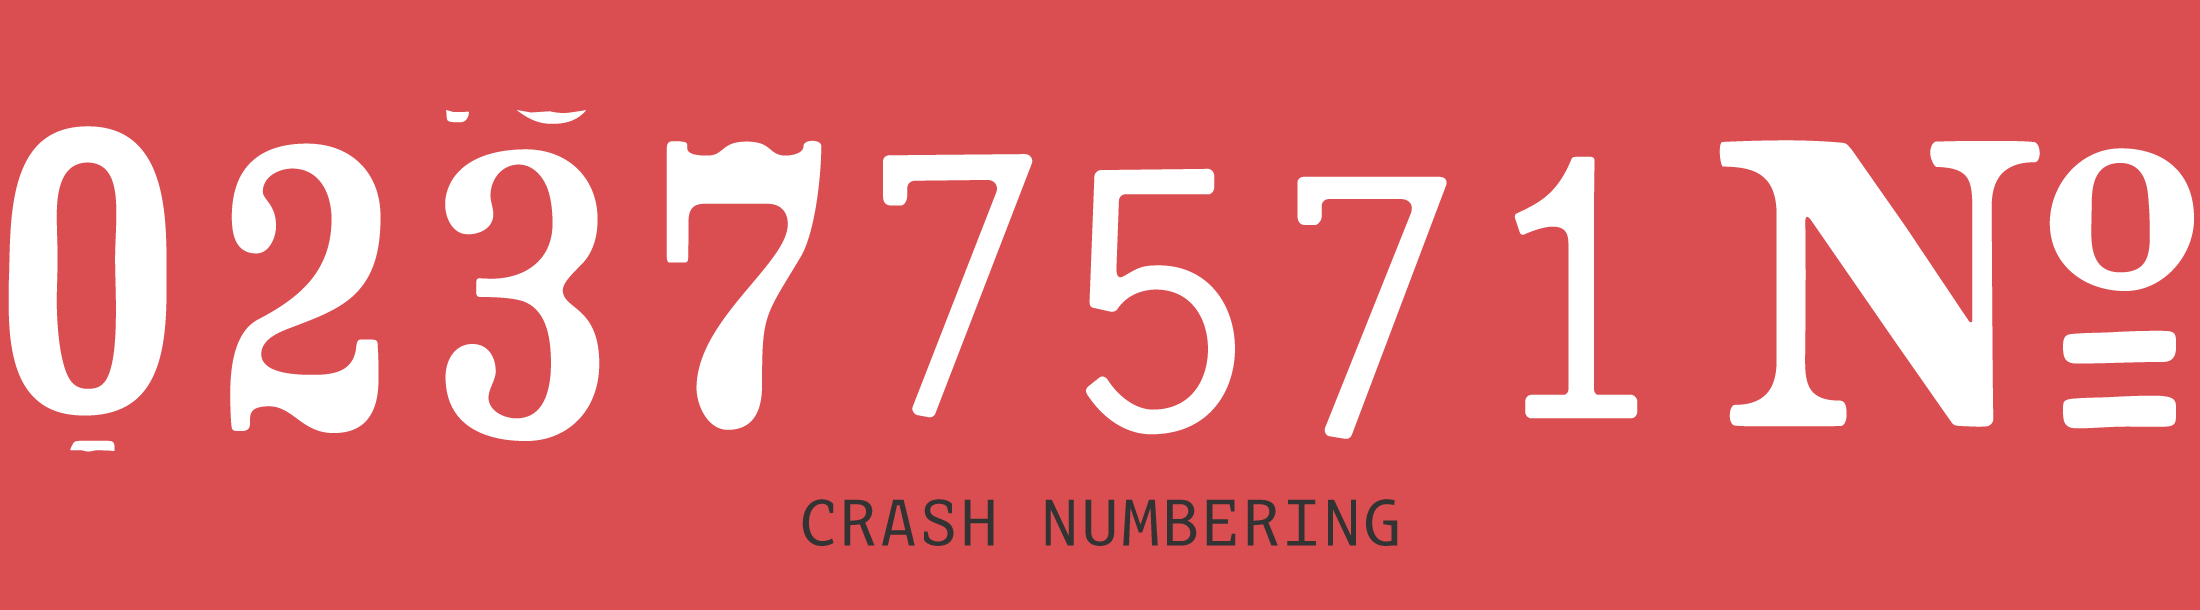 Crash Numbering Free Font - PSYOPS Type Foundry